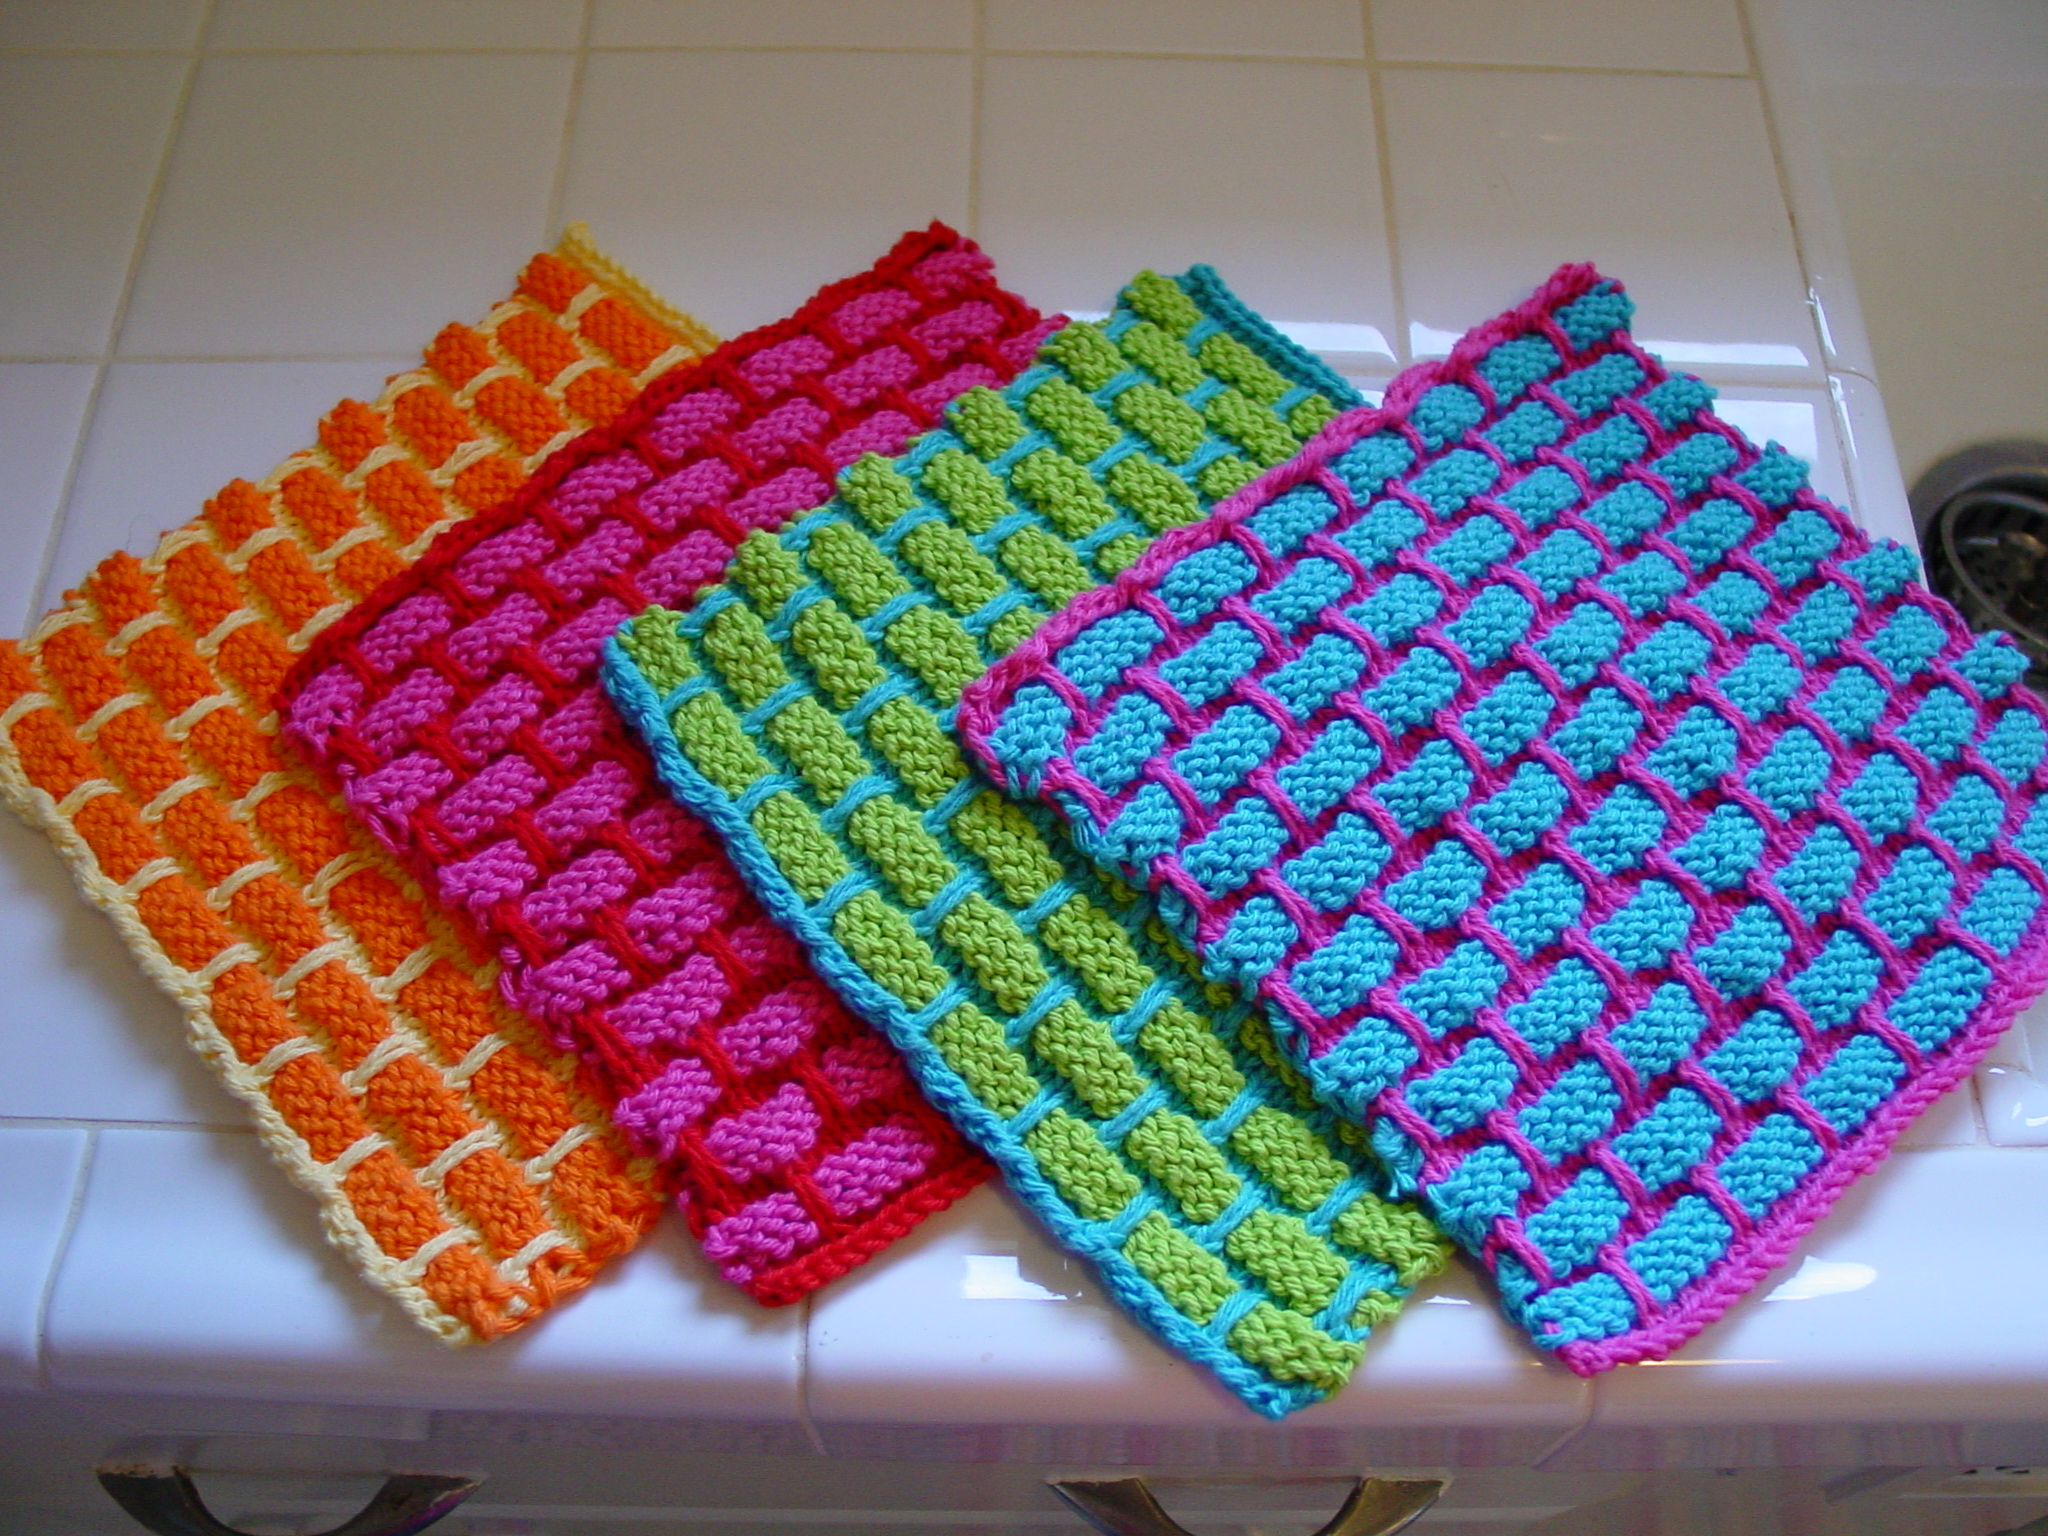 Free Knitting Patterns Dishcloths : File:Dishcloths.jpg - Wikimedia Commons